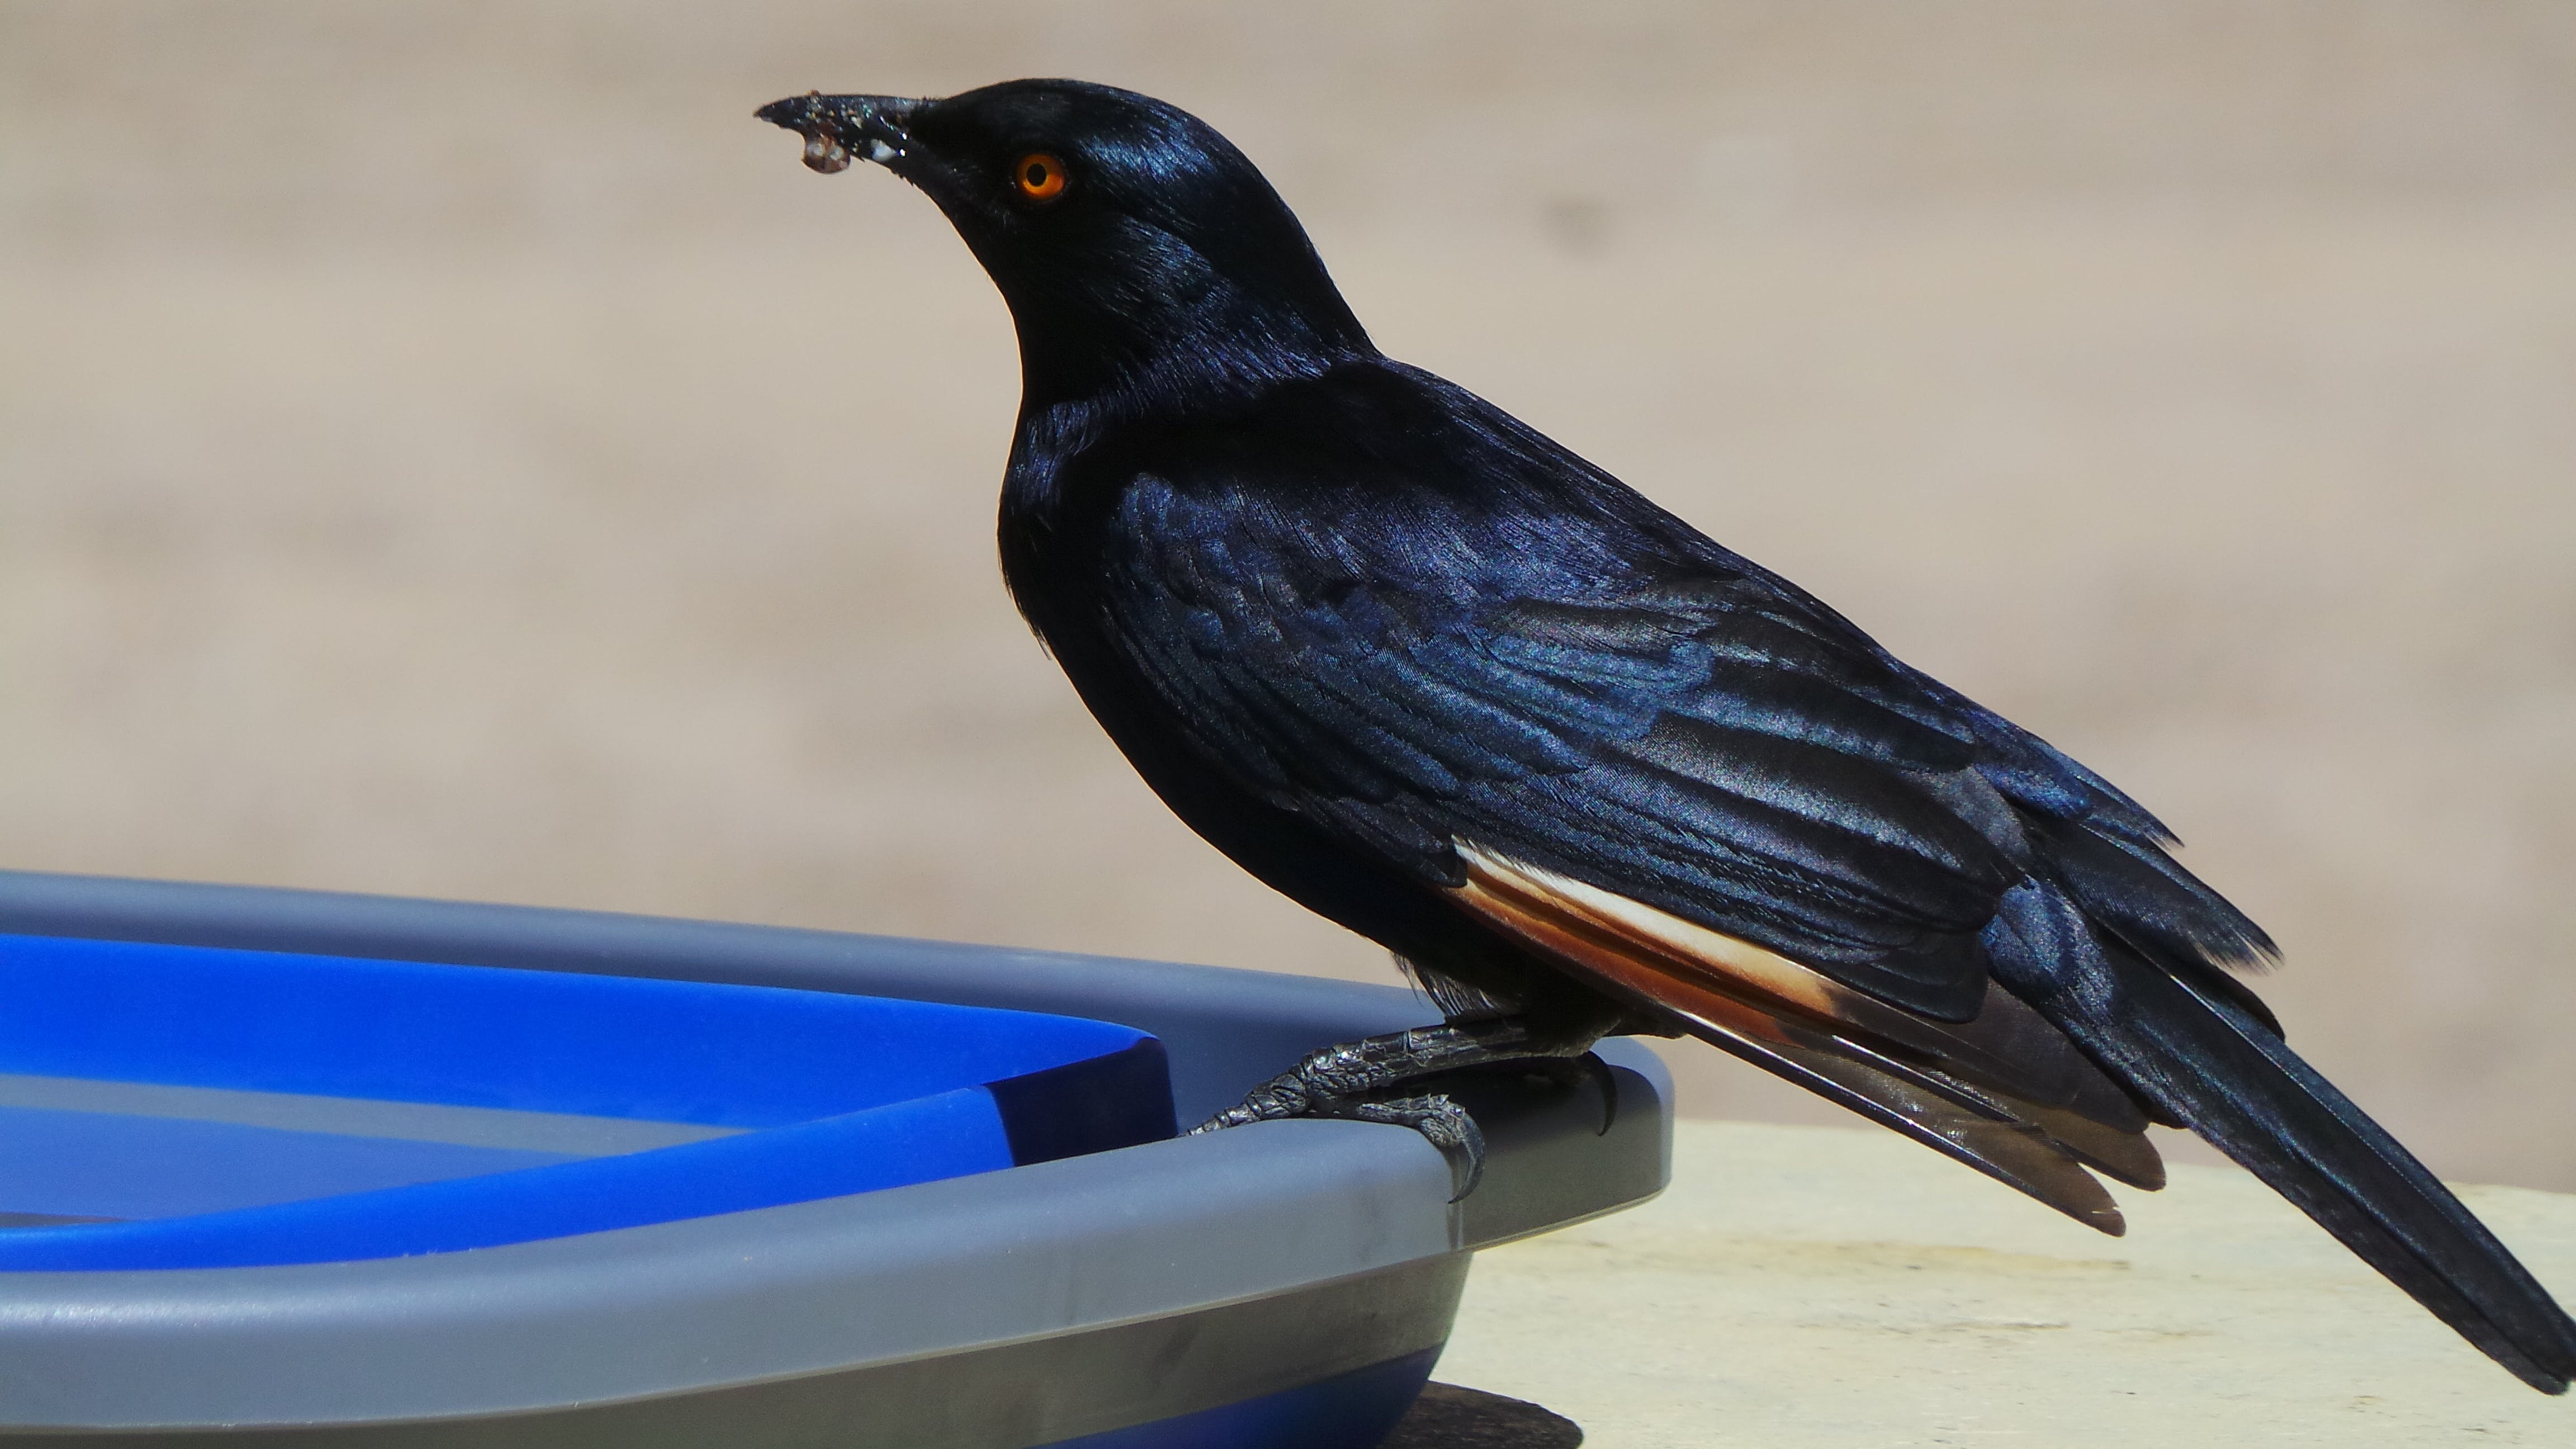 Selective Focus Photo of Black Raven on Plastic Container